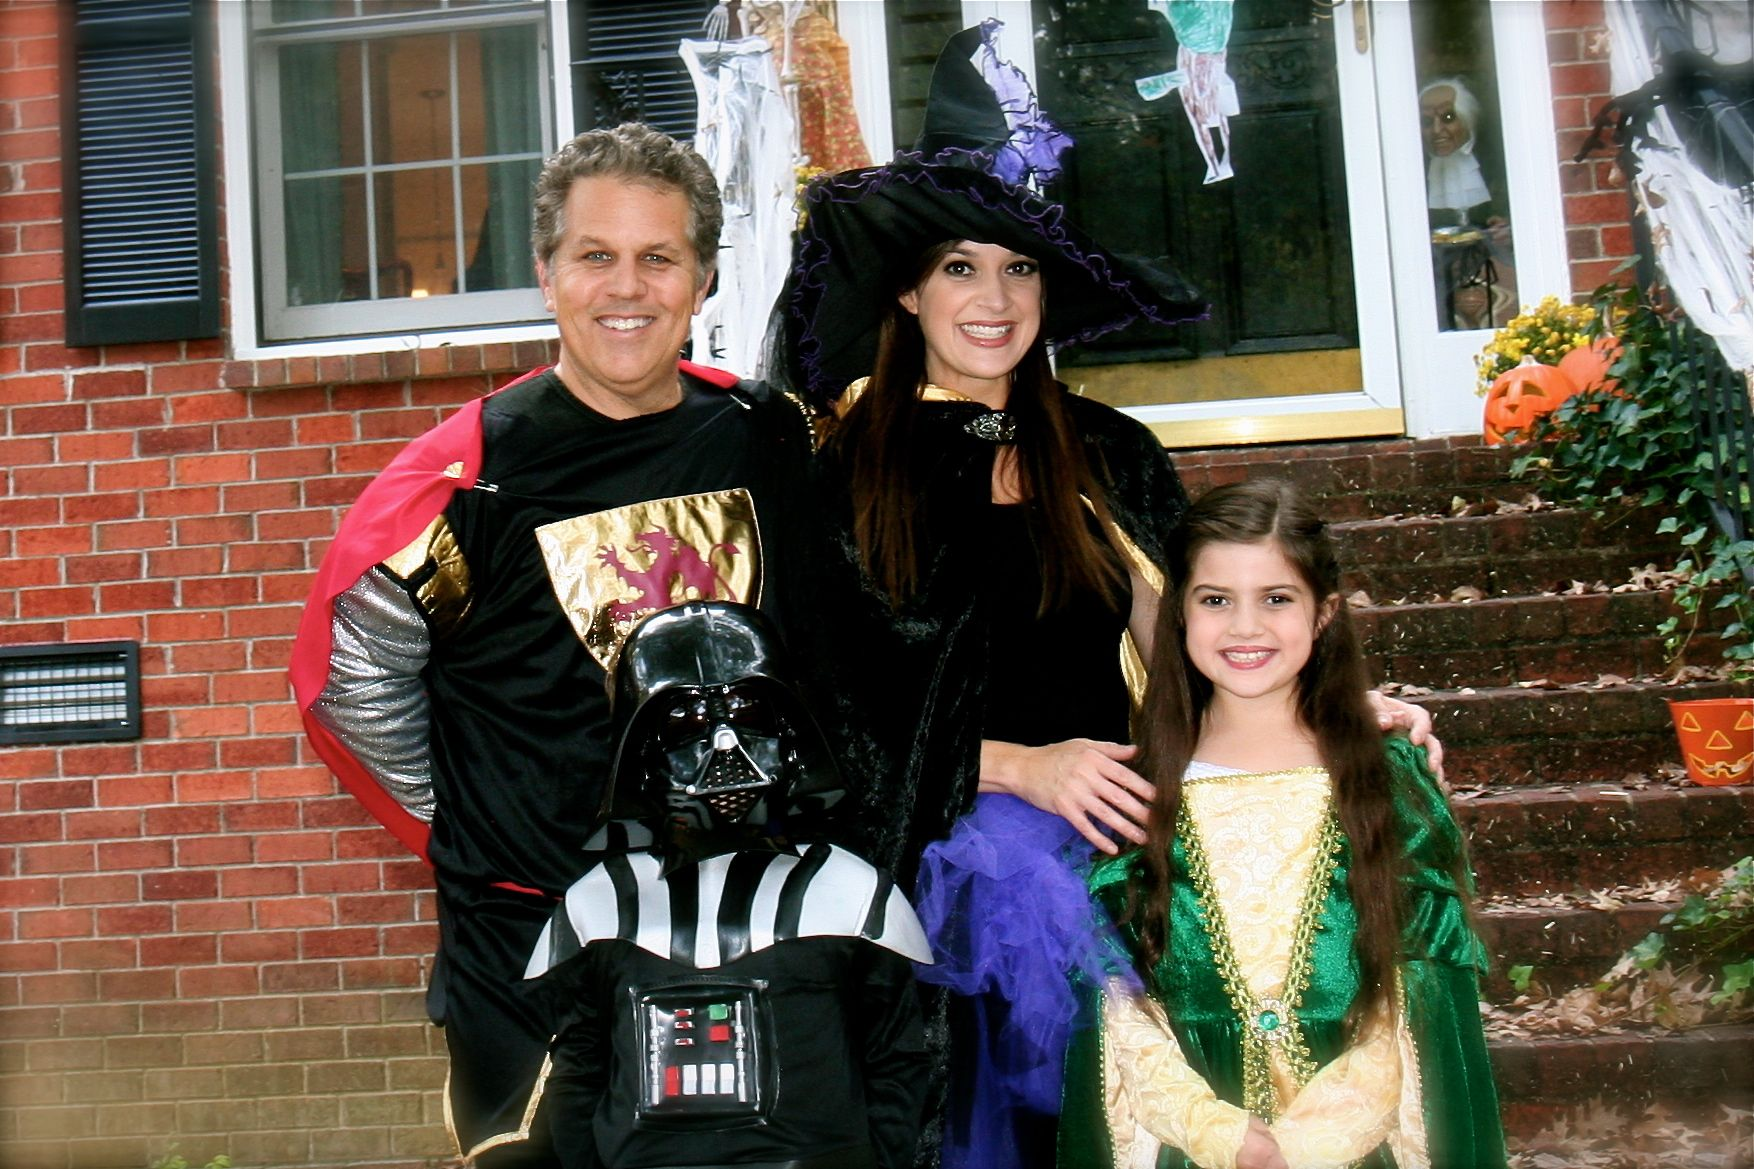 15ec6b0dedc5b Suburban Turmoil  Check out the super-creepy photobomb in our family  Halloween picture!  shudder